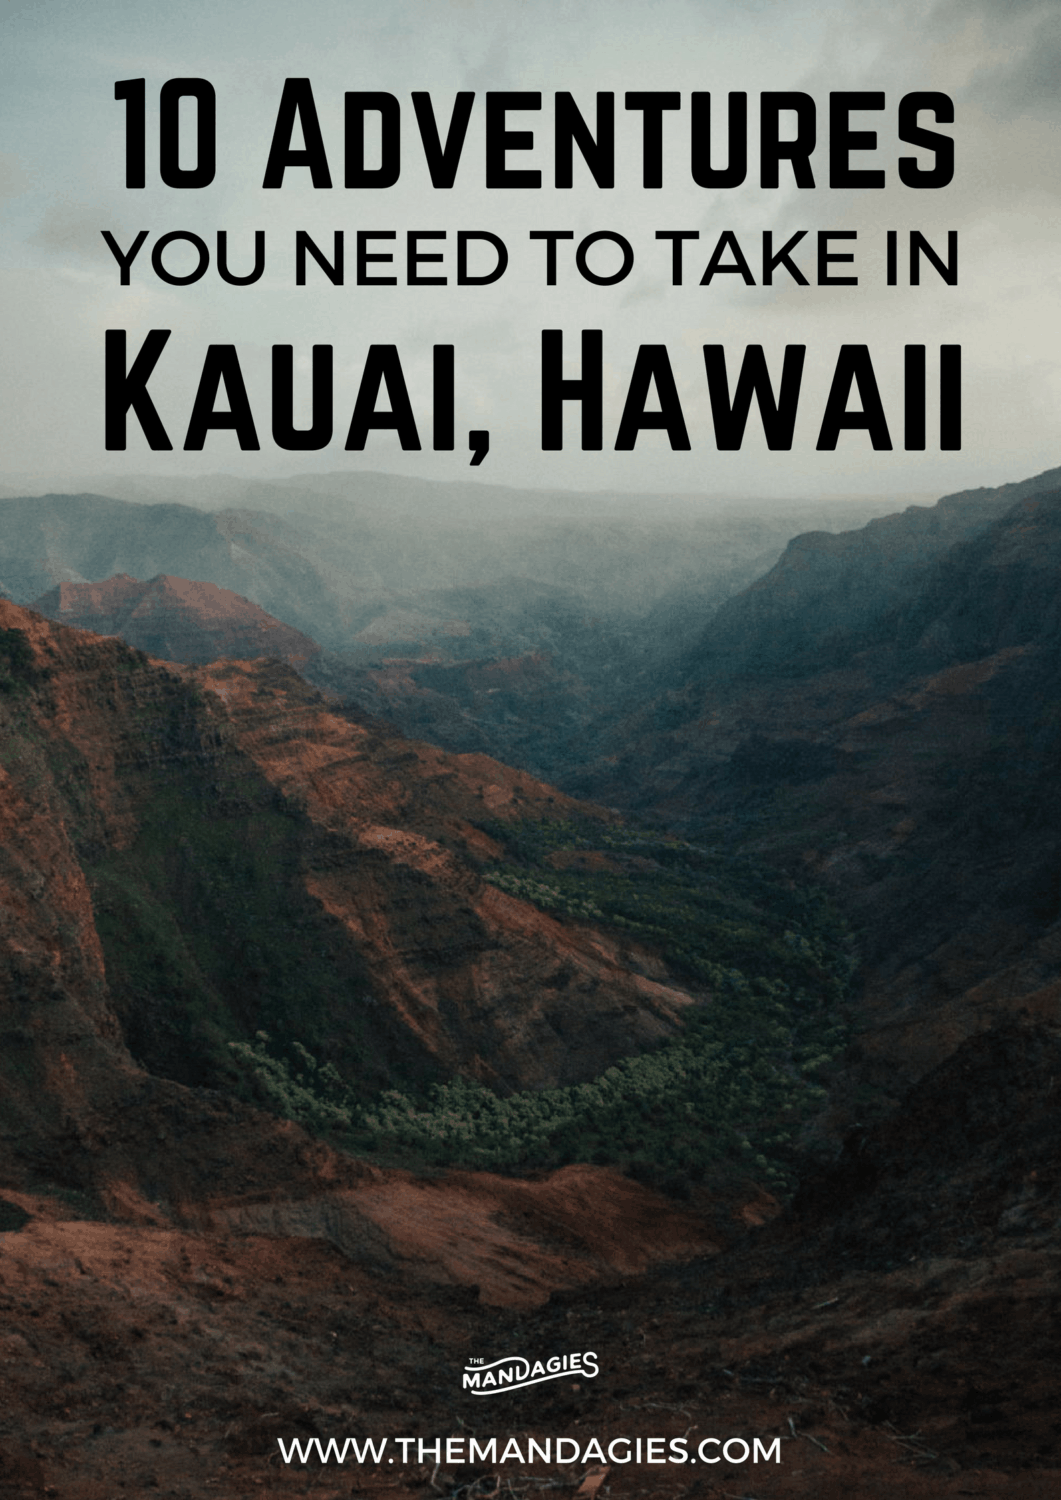 In this post, we're sharing our favorite things to do in Kauai – all inclusive with gorgeous beaches, stunning vistas, and breathtaking waterfalls! This post has everything you need to have the adventure of a lifetime in Hawaii! #kauai #hawaii #kapaa #beach #surf #summer